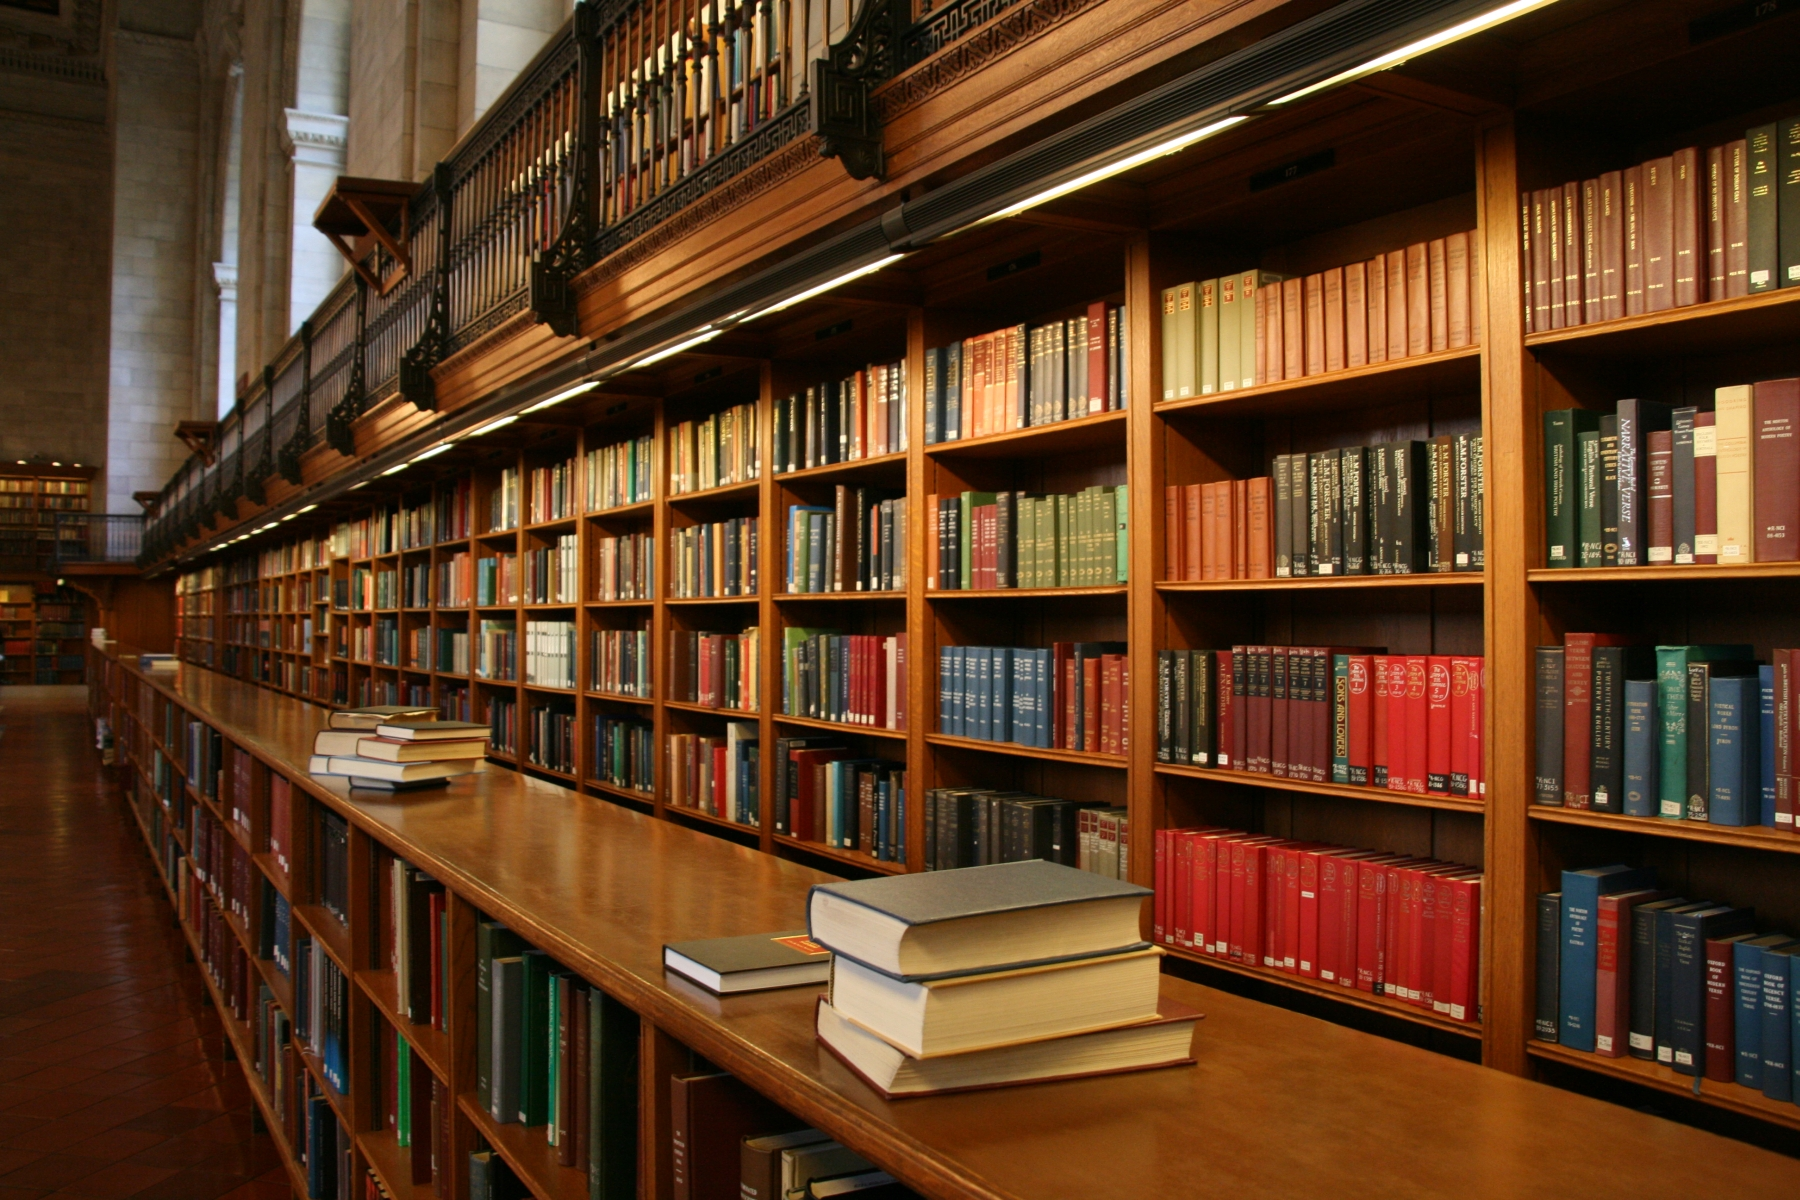 A shelf of books in a library